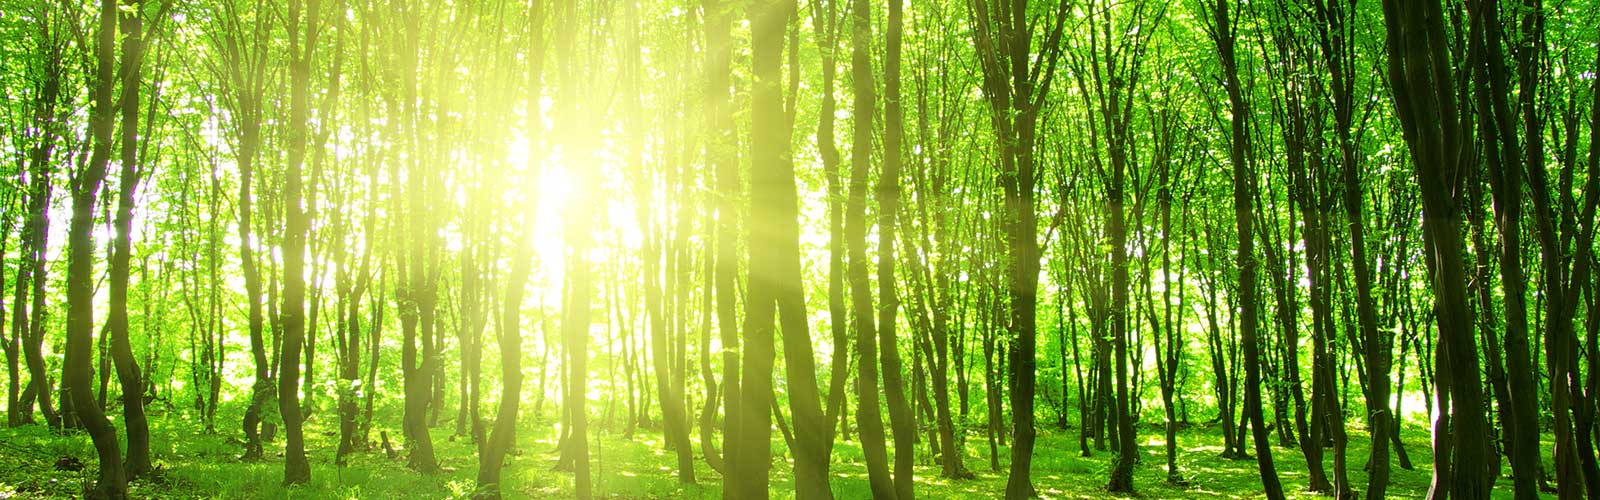 Green Living in a Technological World